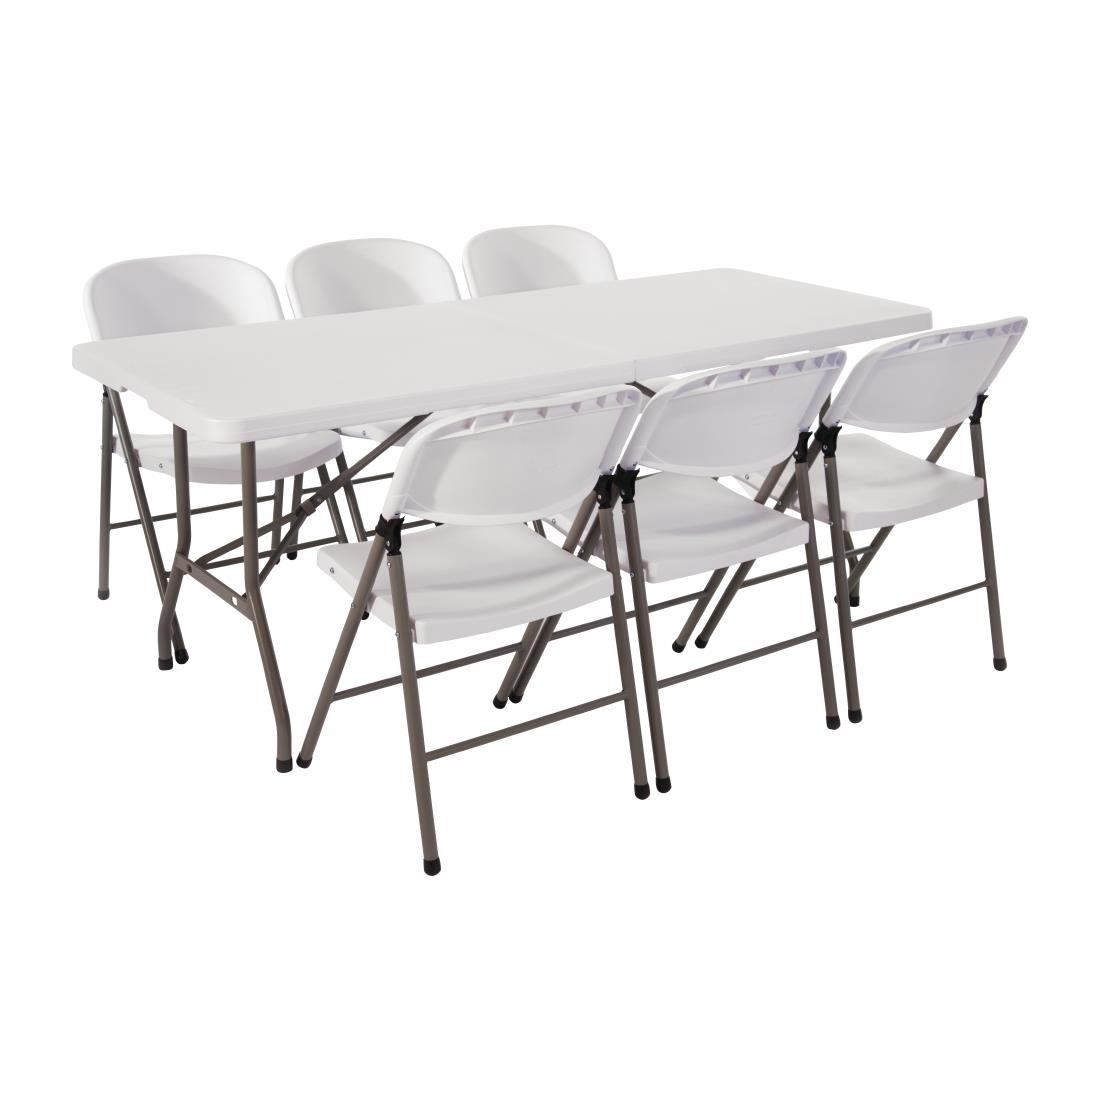 - Special Offer Bolero PE Centre Folding Table 6ft With Six Folding